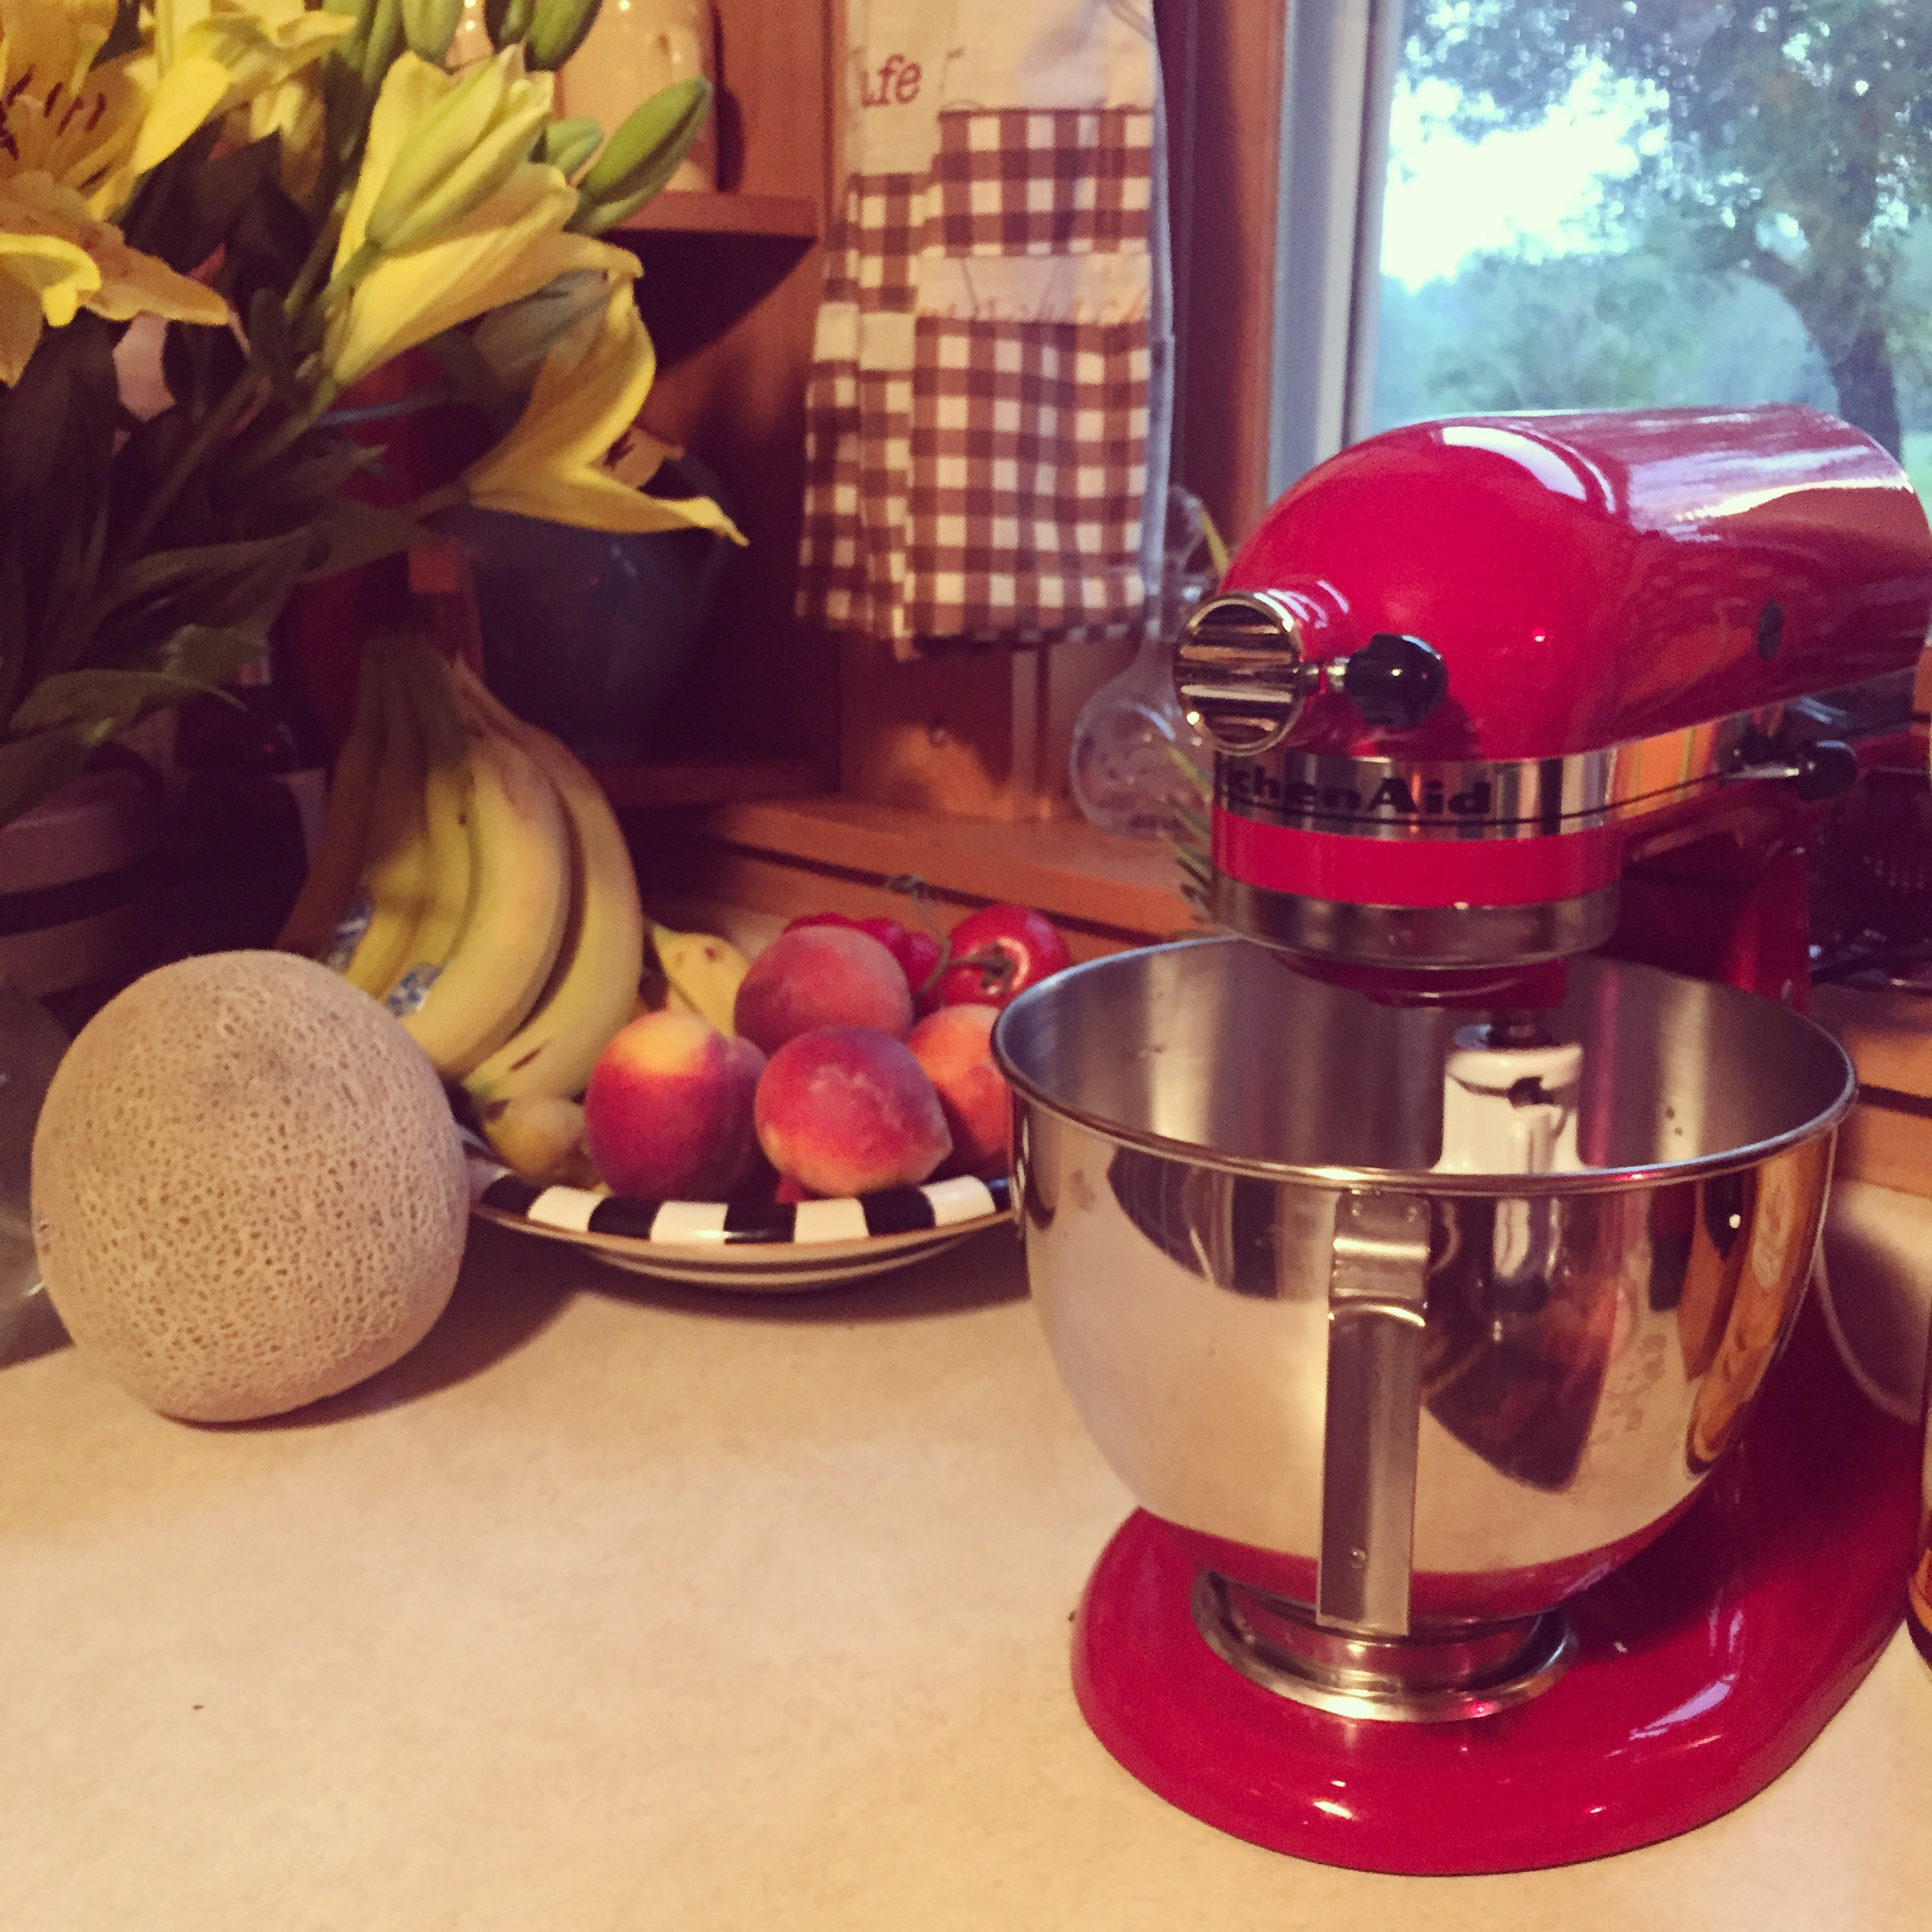 My sexy new Kitchenaid mixer. I have wanted one FOREVER! Thank you, John.